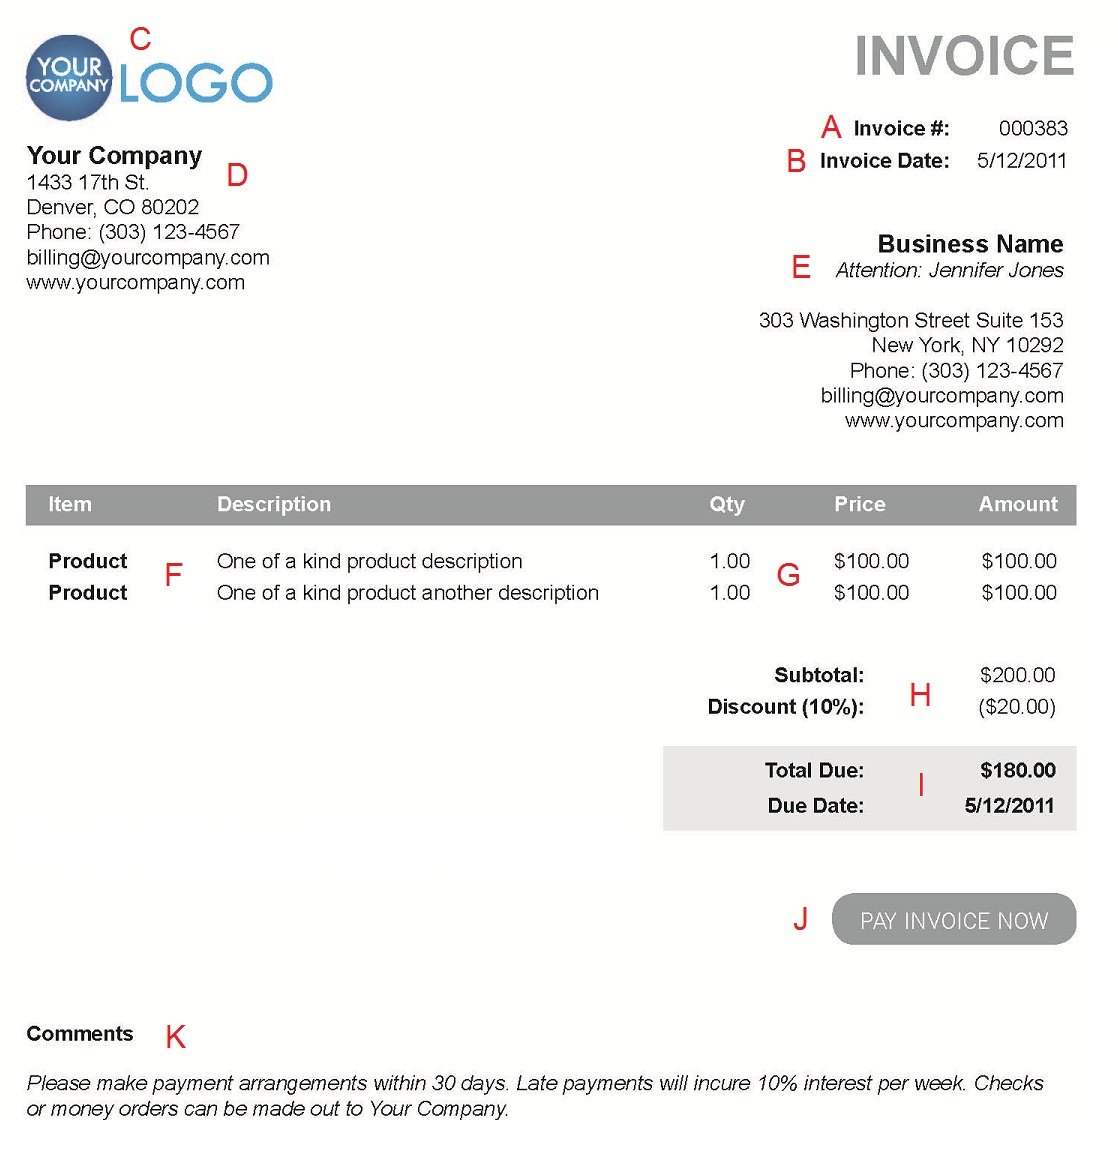 Pxworkoutfreeus  Winsome The  Different Sections Of An Electronic Payment Invoice With Engaging A  With Beautiful Accounting Receipt Also Receipt Templates For Word In Addition Product Receipt Template And Fake Taxi Receipts As Well As Receipt Printer Rolls Additionally Rrsp Receipt From Paysimplecom With Pxworkoutfreeus  Engaging The  Different Sections Of An Electronic Payment Invoice With Beautiful A  And Winsome Accounting Receipt Also Receipt Templates For Word In Addition Product Receipt Template From Paysimplecom